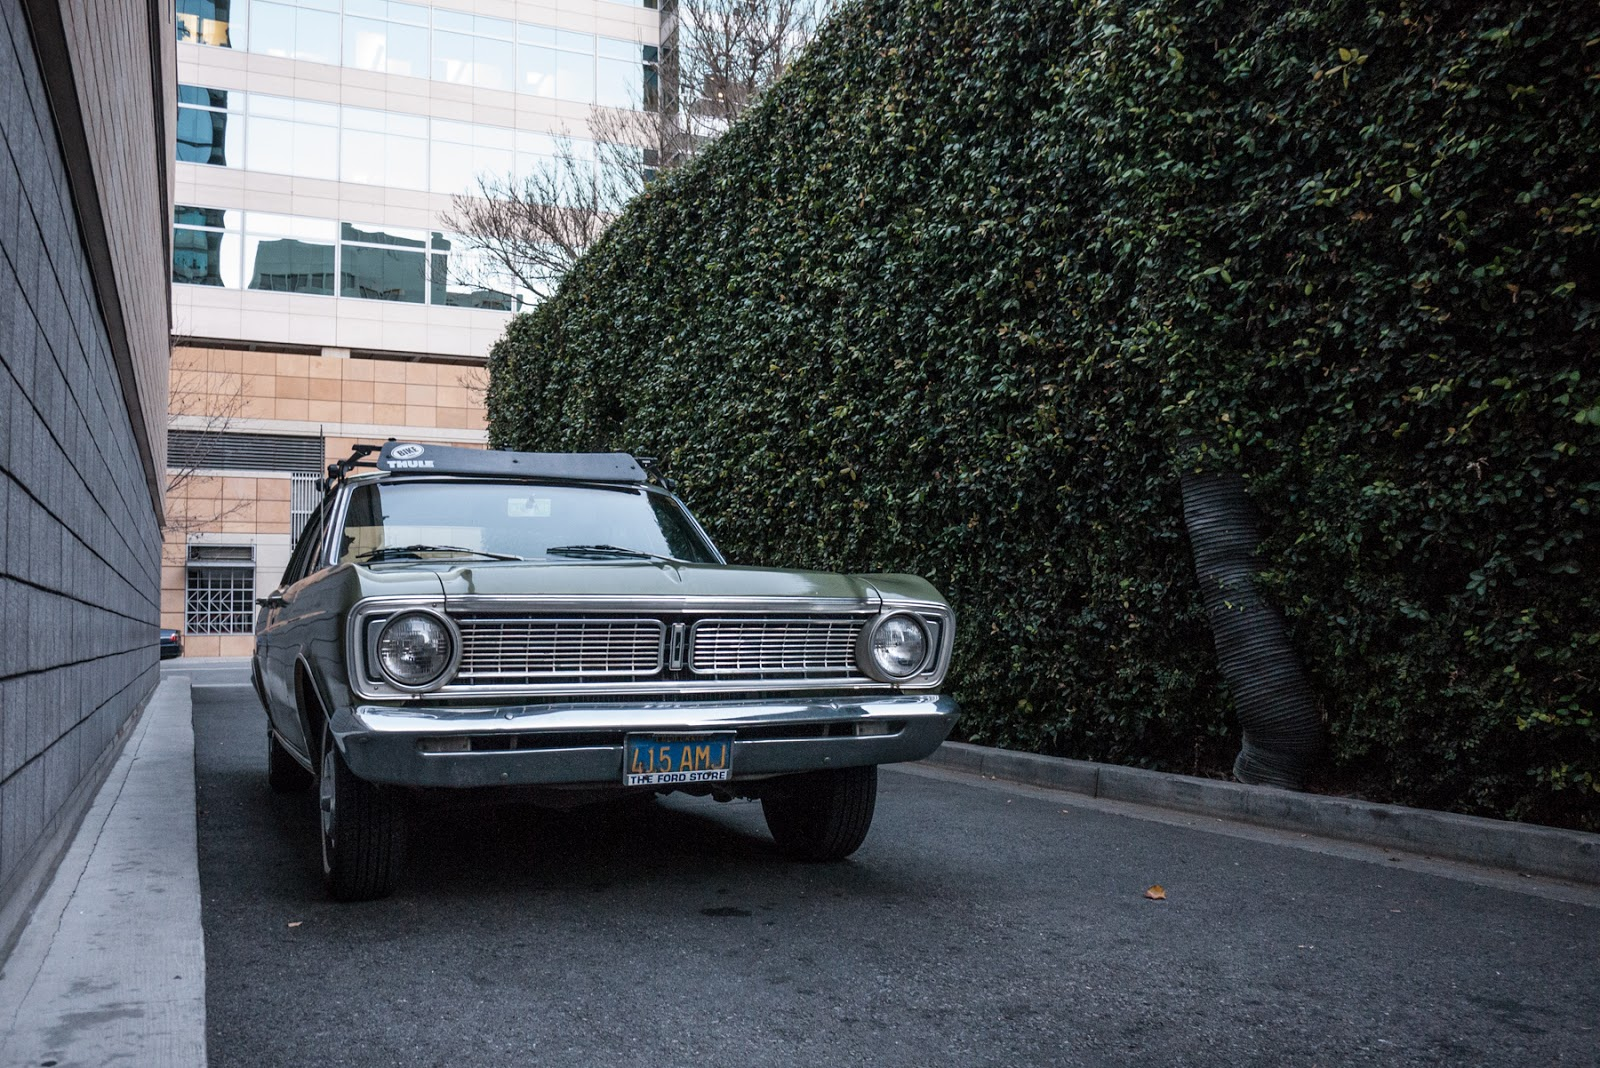 THE STREET PEEP: 1969 Ford Falcon Futura